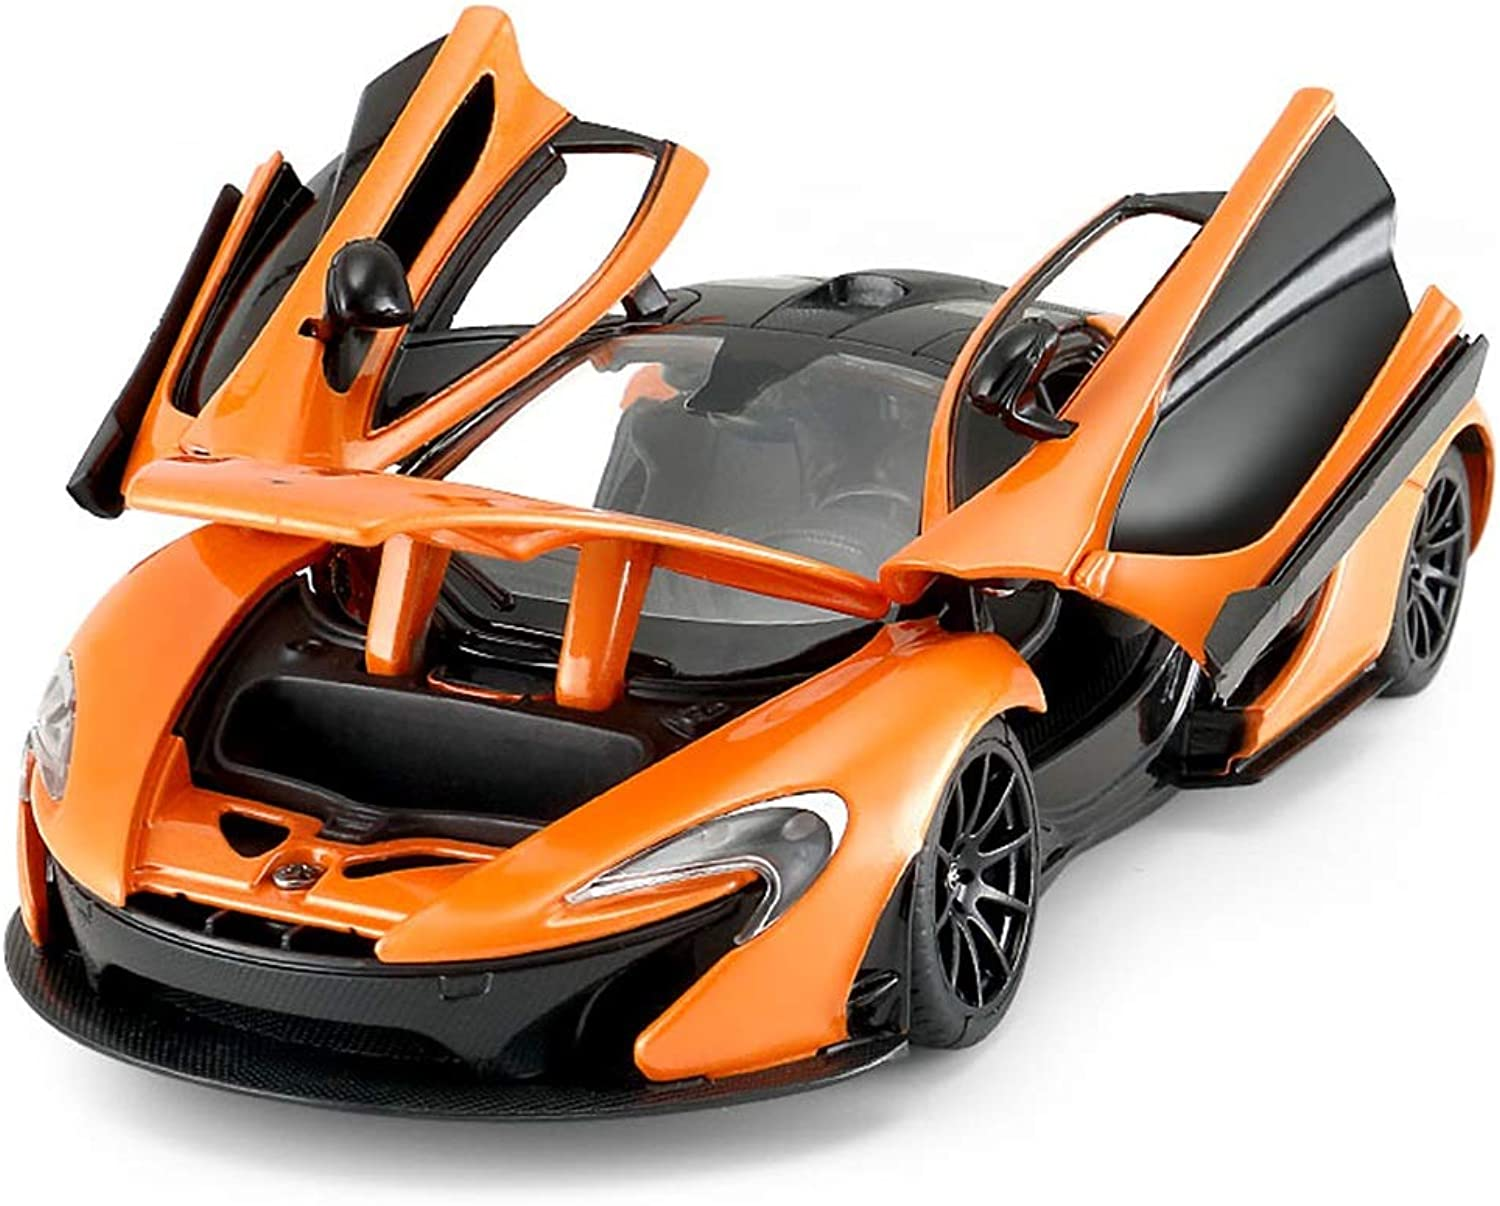 MUYB Car Model Die Casting Car McLaren Simulation Alloy Toy Car Boy Static Car Model 1 24 Can Open The Door (color   orange)